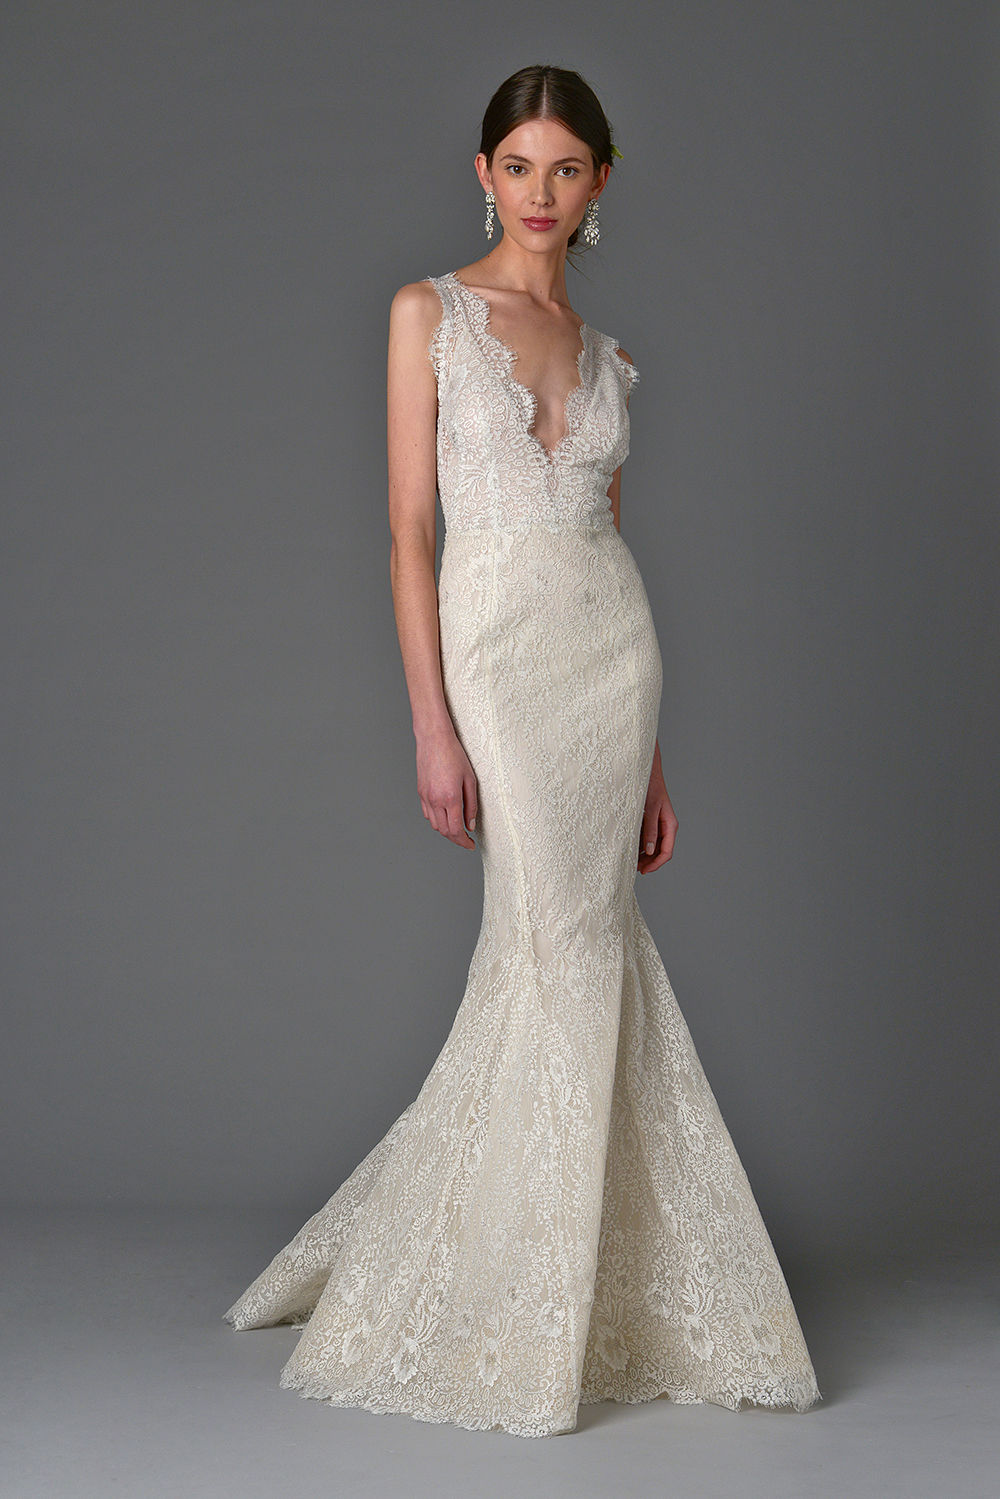 Lavender without overskirt - Marchesa Spring 2017 Bridal Collection. www.theweddingnotebook.com